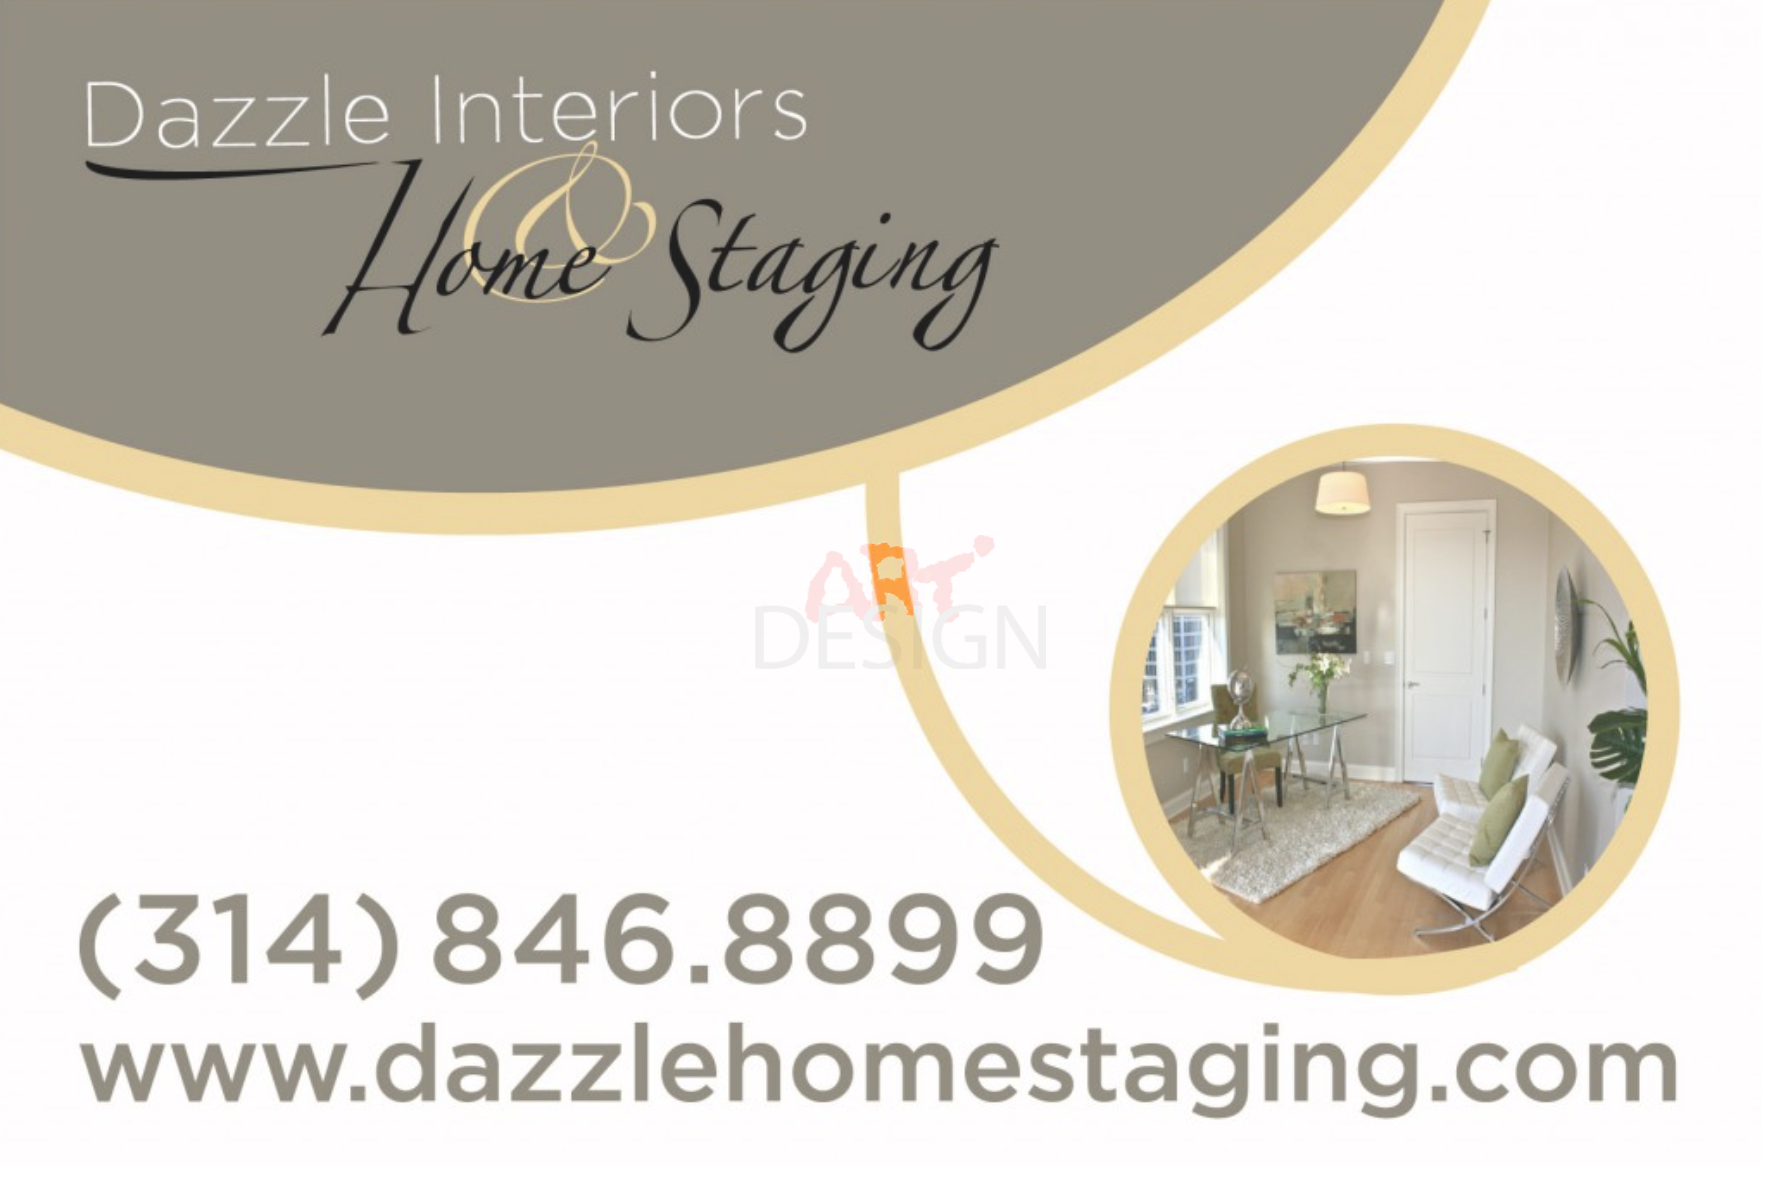 Business Card Dazzle Home Staging by Ganna Sheyko AnnaArtDesign